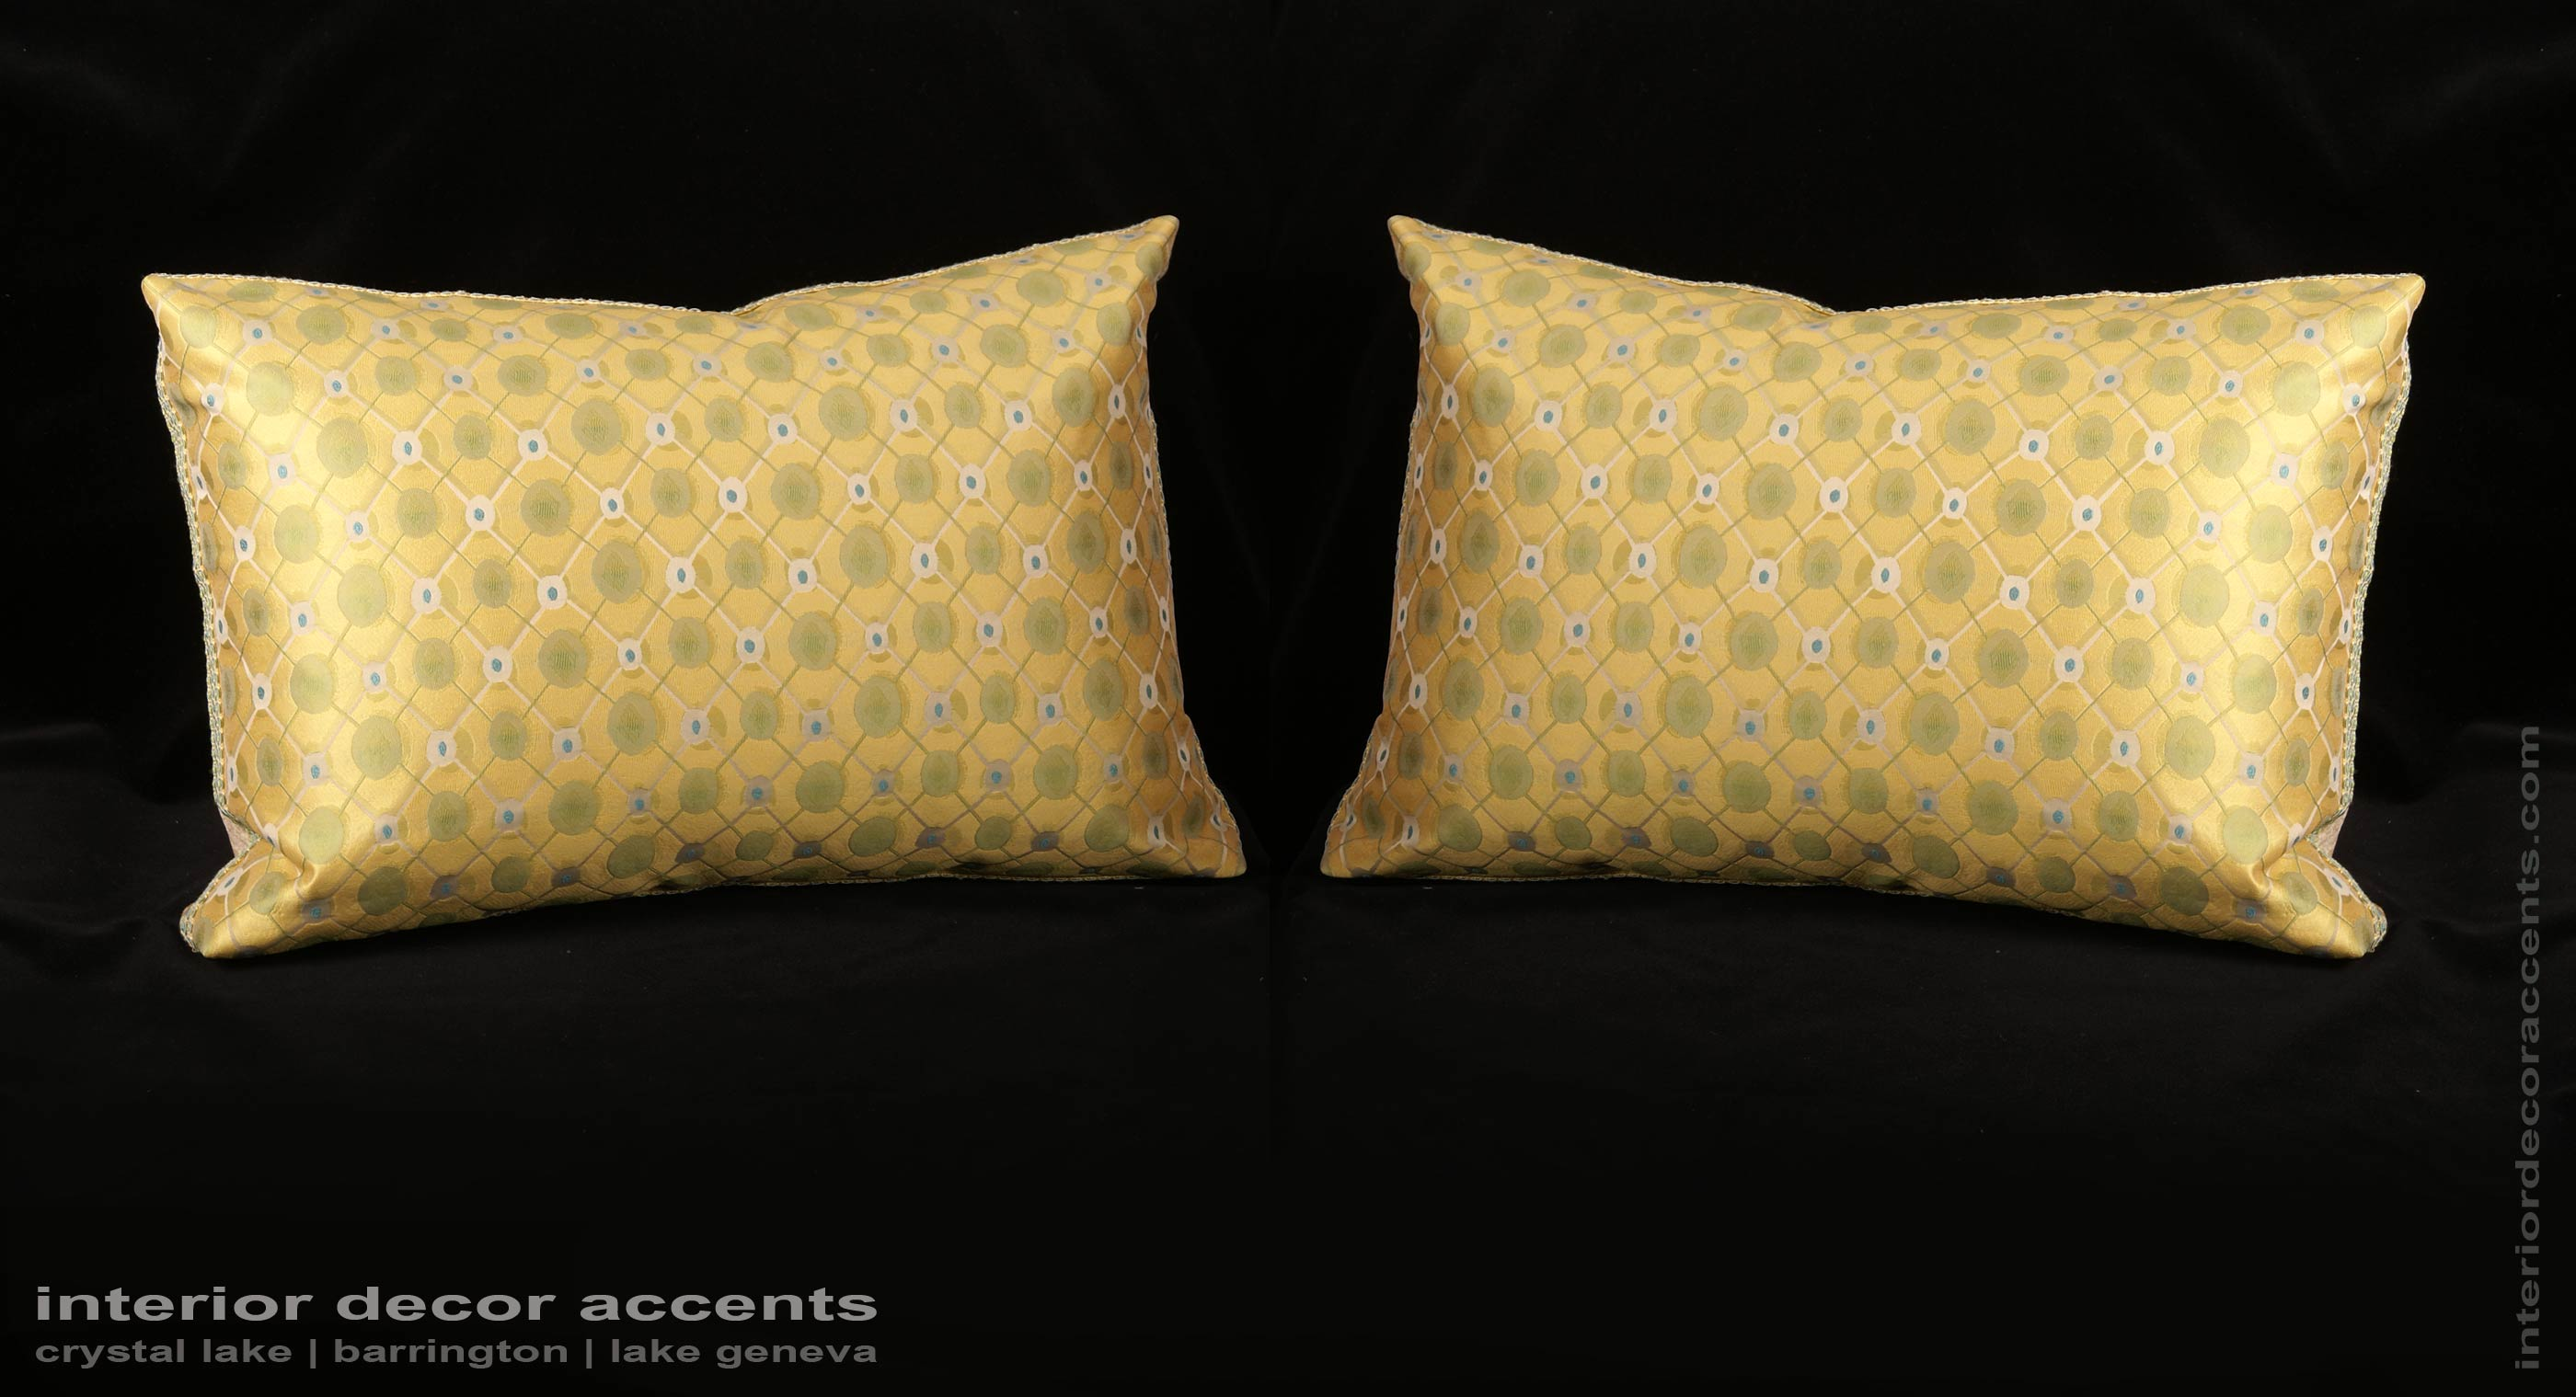 Stunning Retro Yellow Colored Pure Silk Lampas Decorative Throw Pillows With Kravet Couture Backing Velvet For